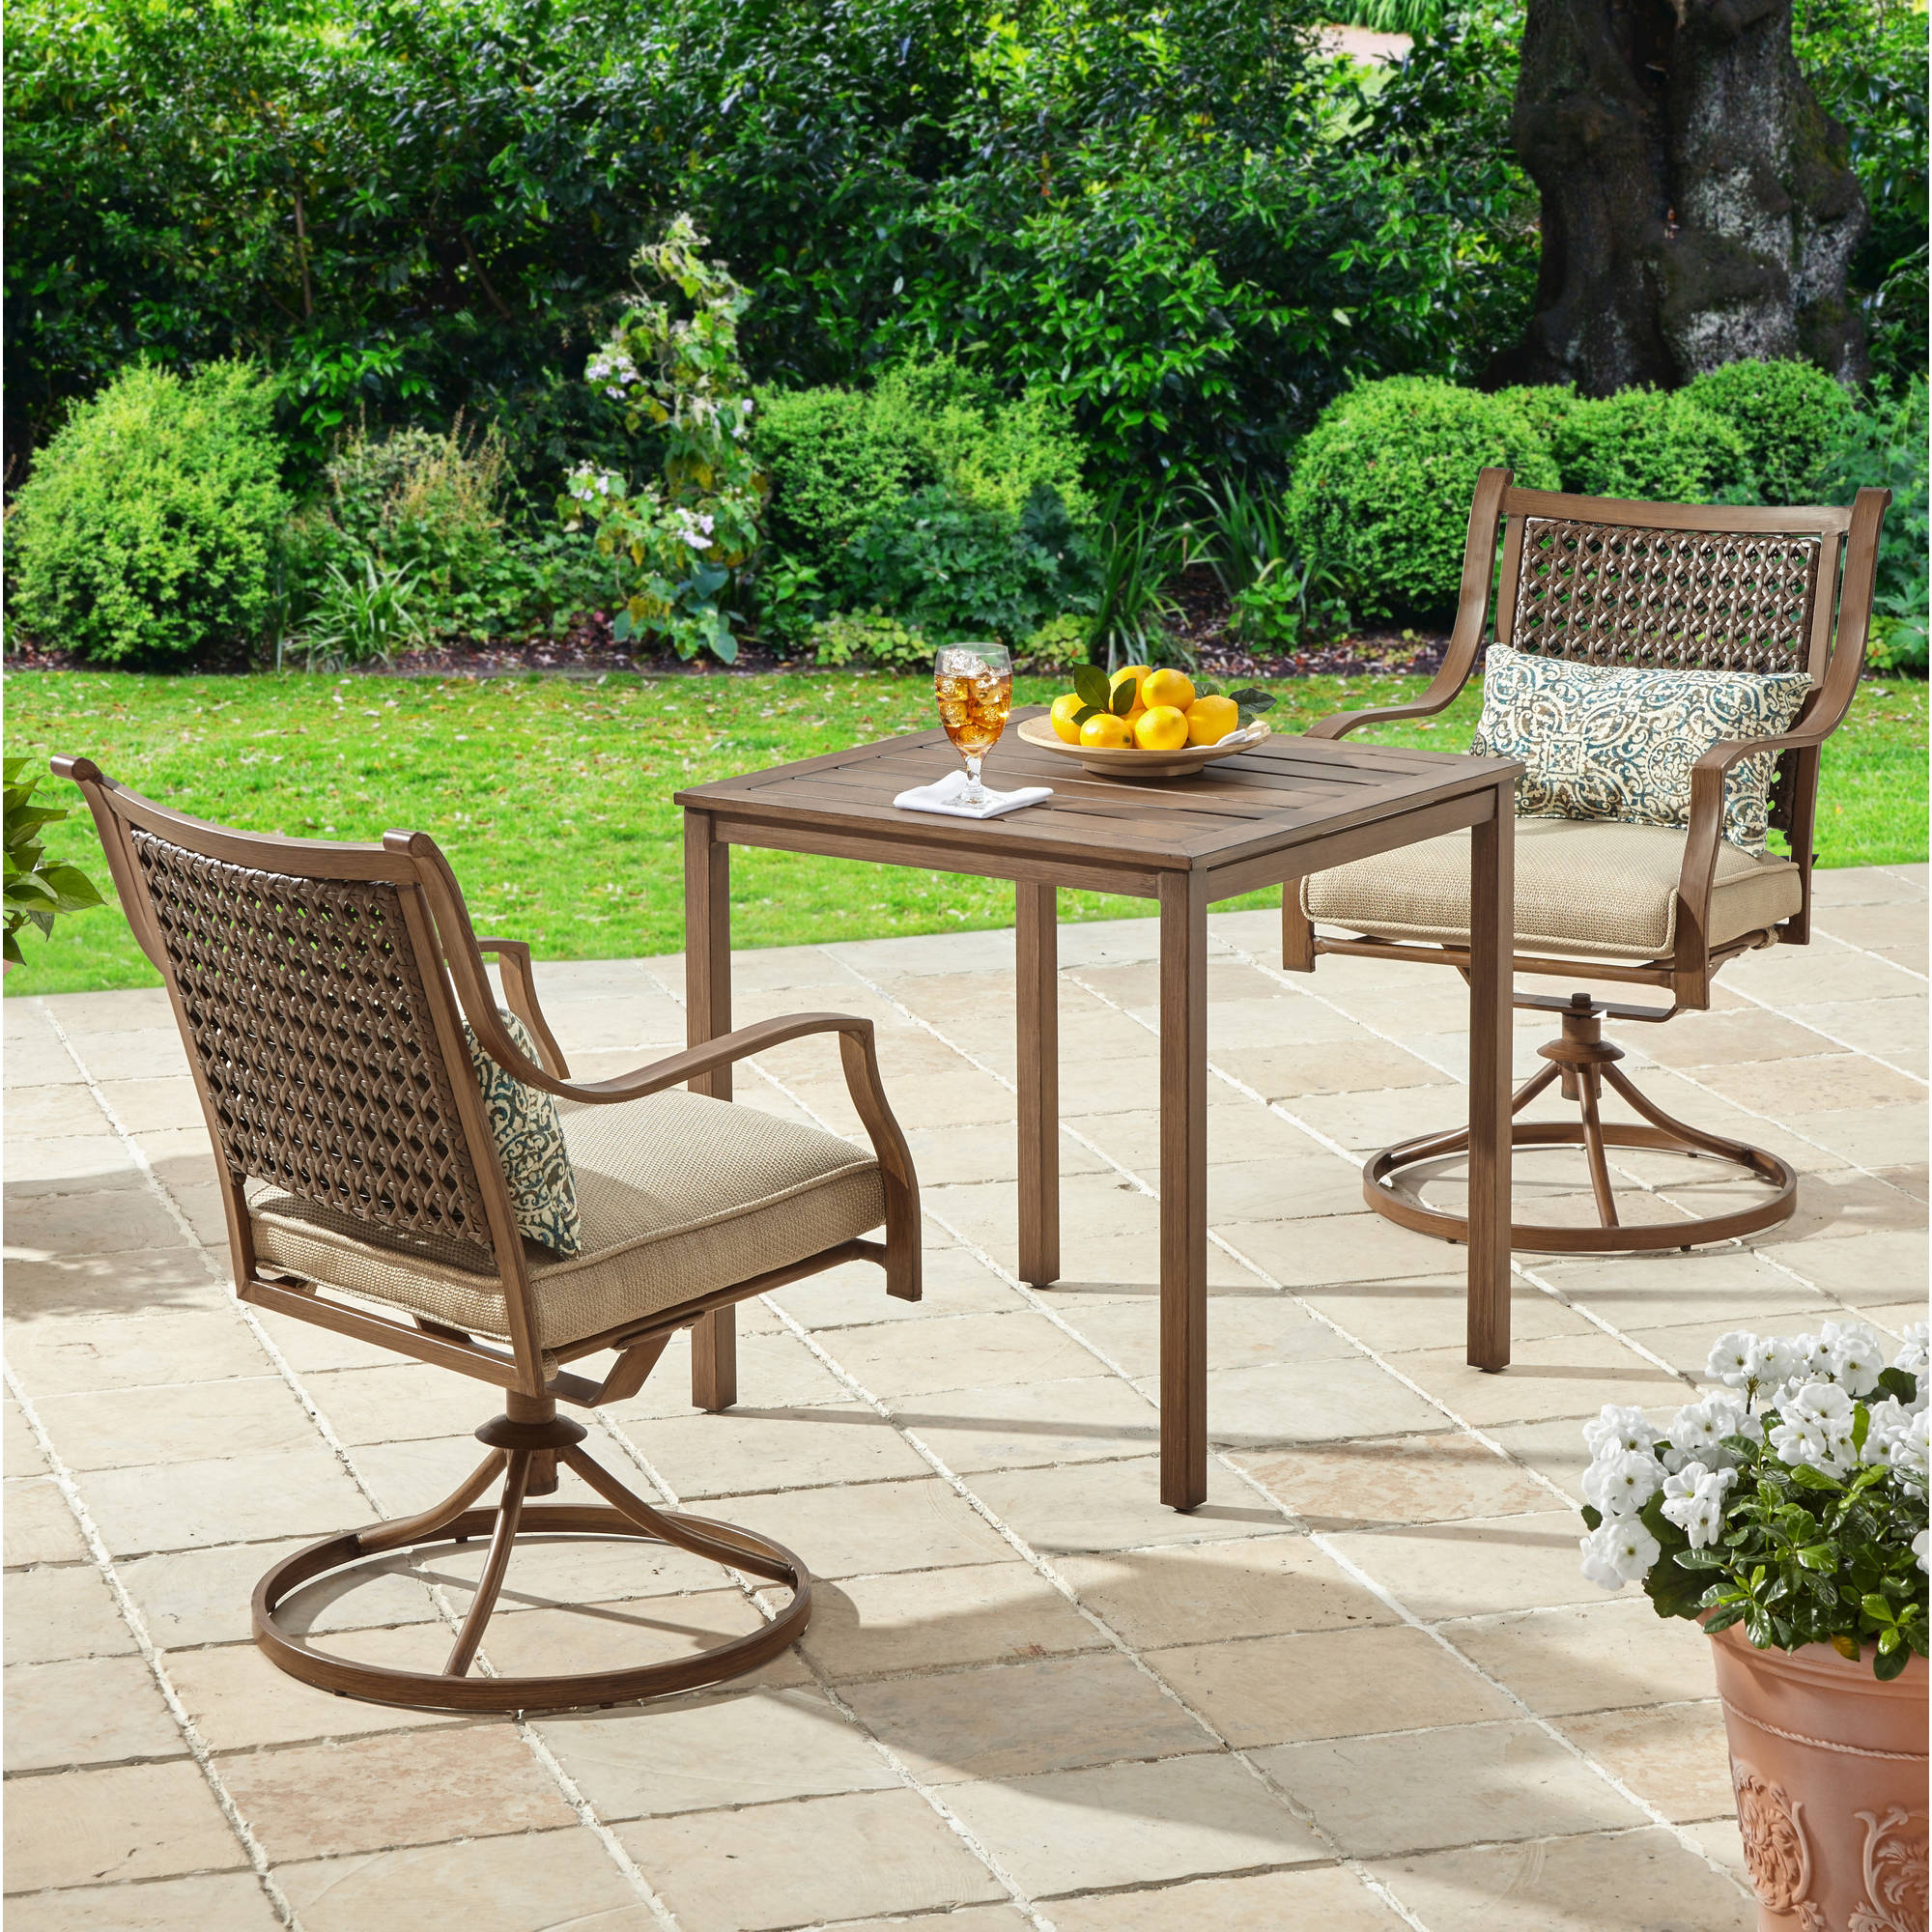 Better Homes and Gardens Lynnhaven Park 3-Piece Outdoor Bistro Set by Zhejiang Huayue Furniture